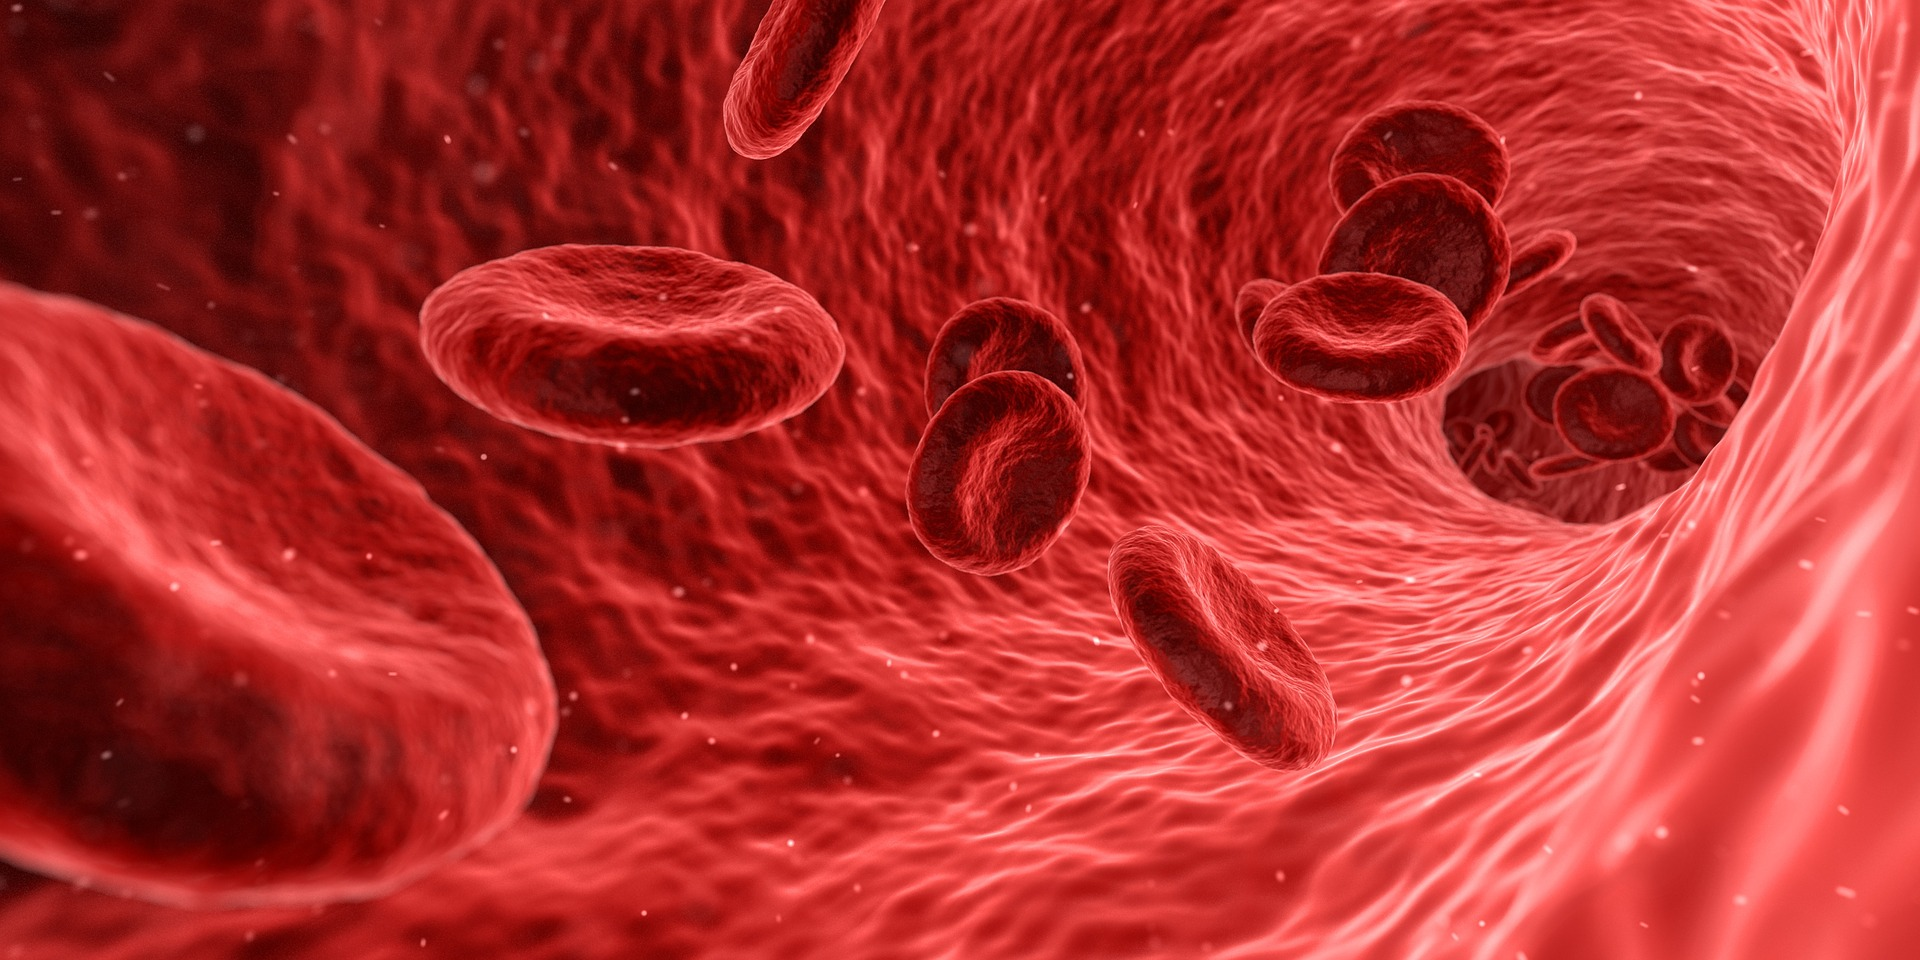 Hemoglobin, iron-rich proteins moving through the body